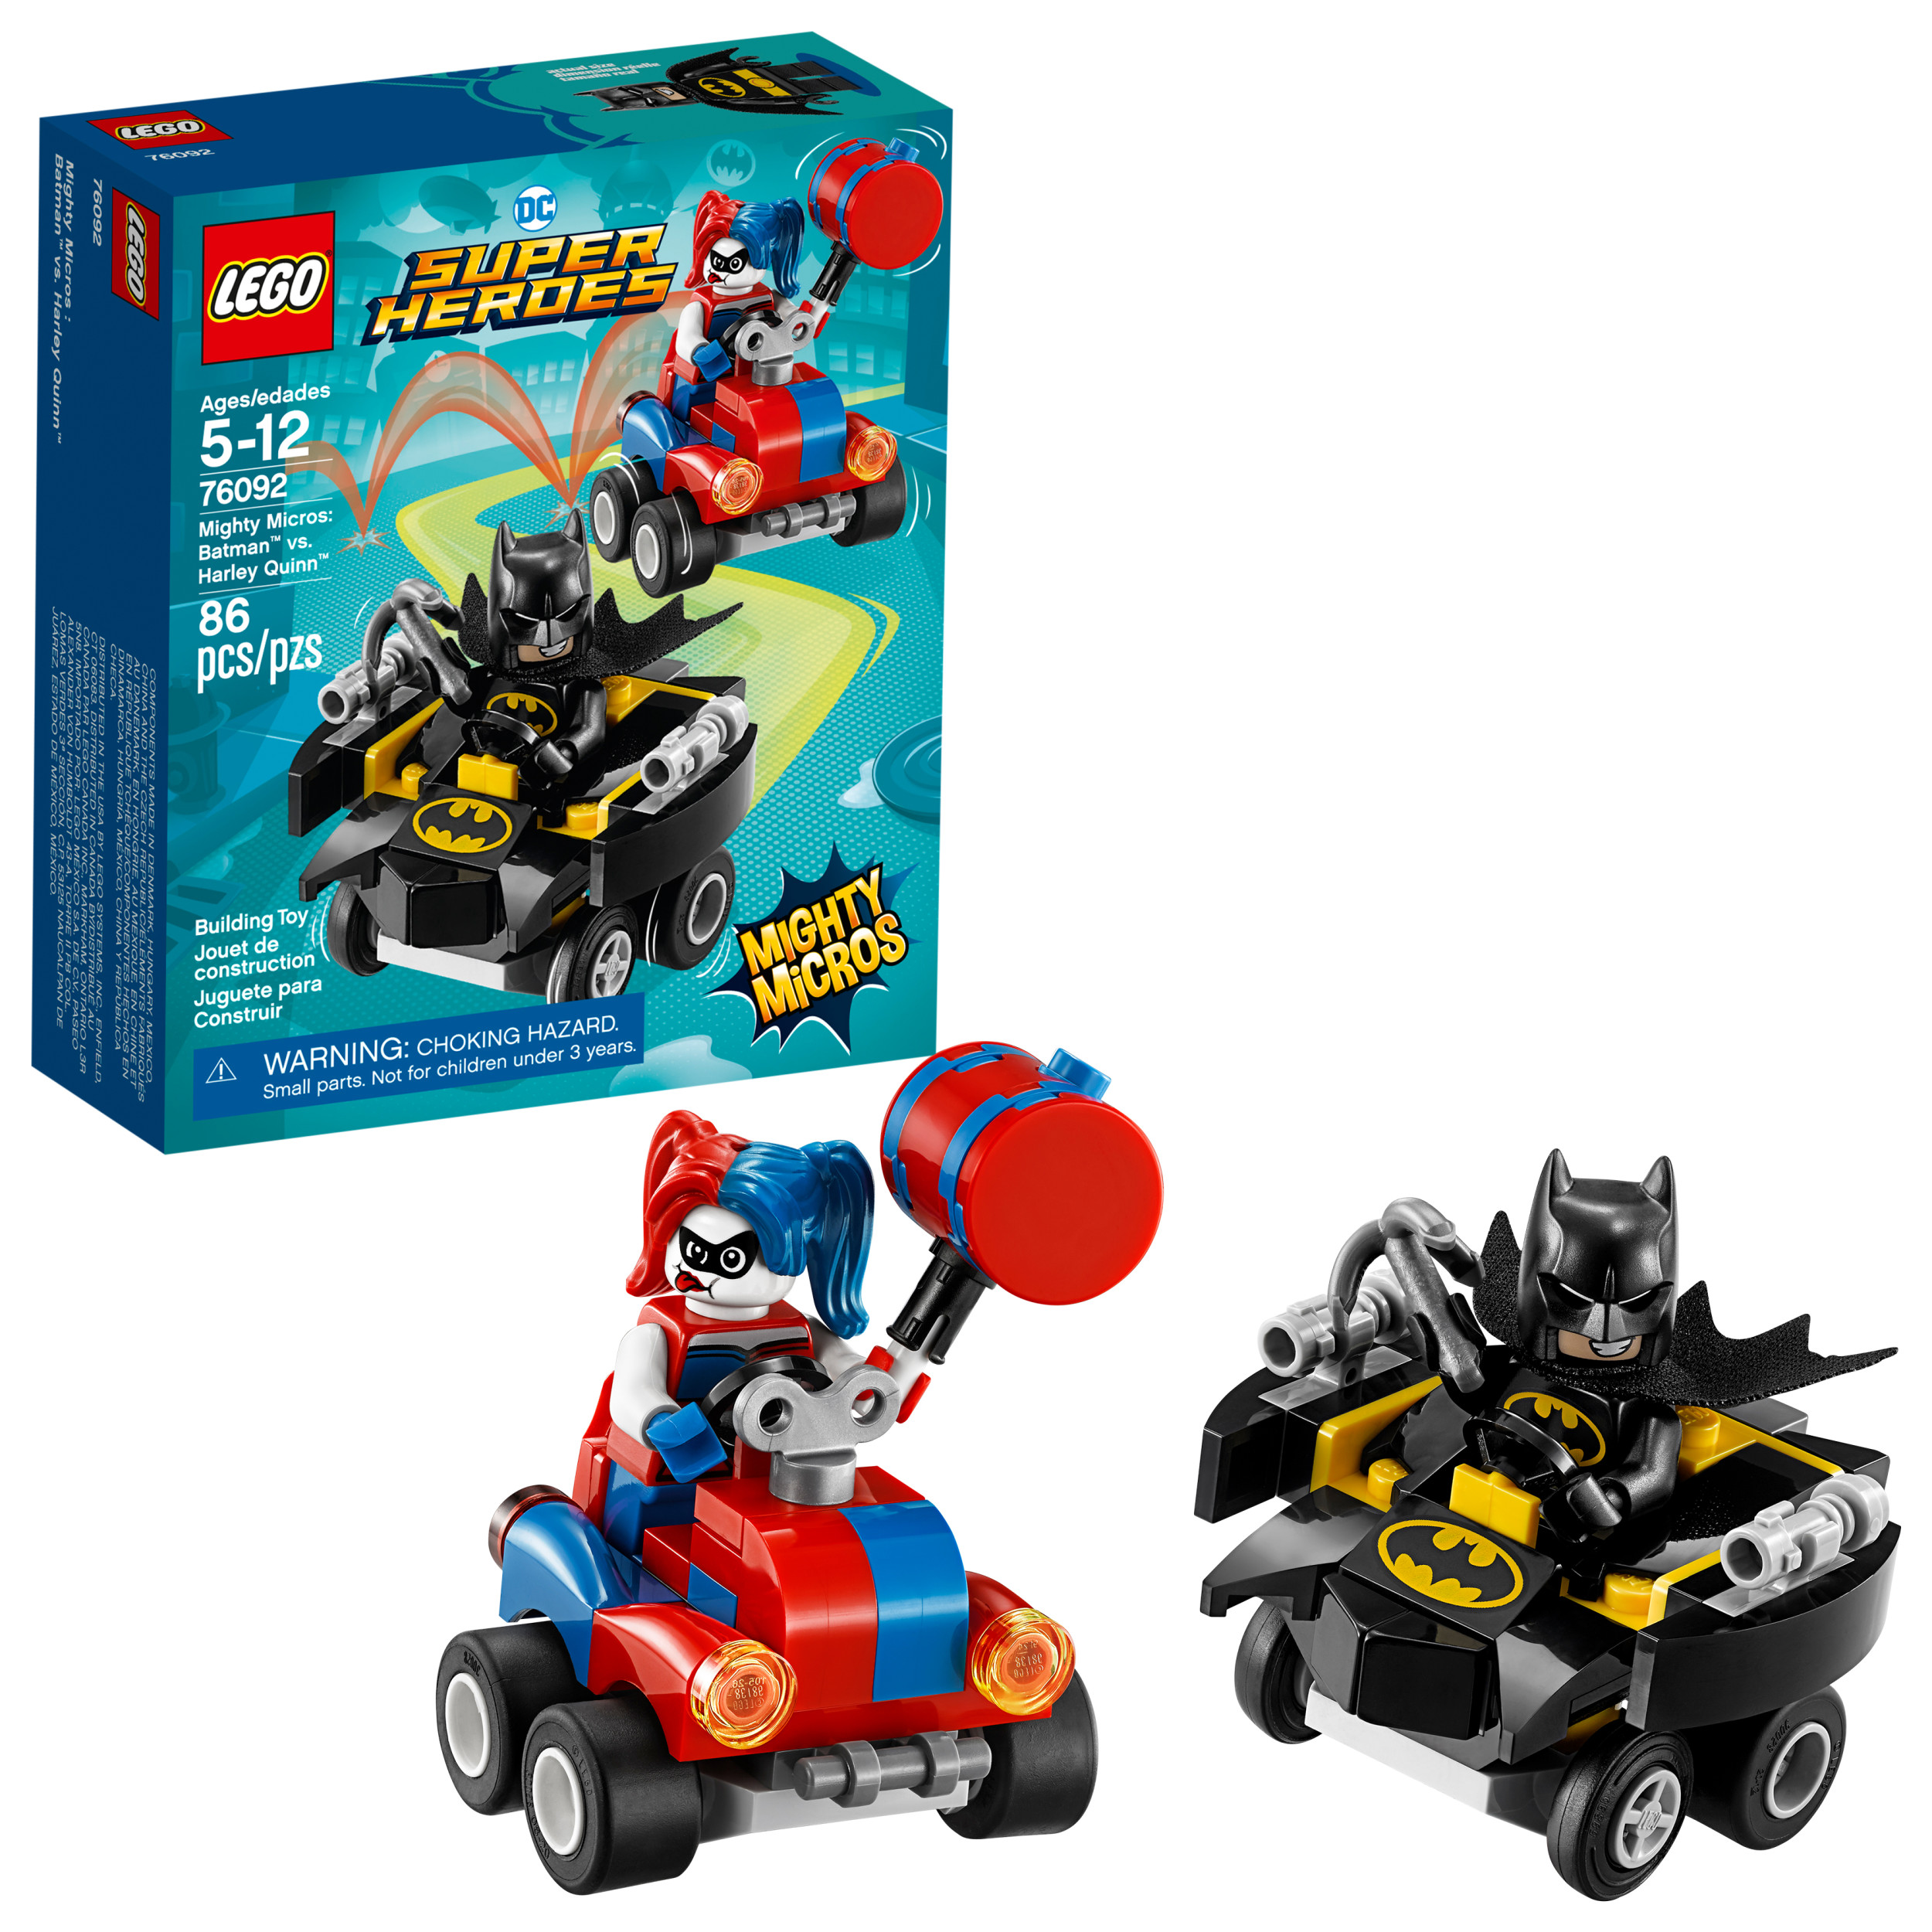 LEGO Super Heroes Mighty Micros: Batman vs. Harley Quinn 76092